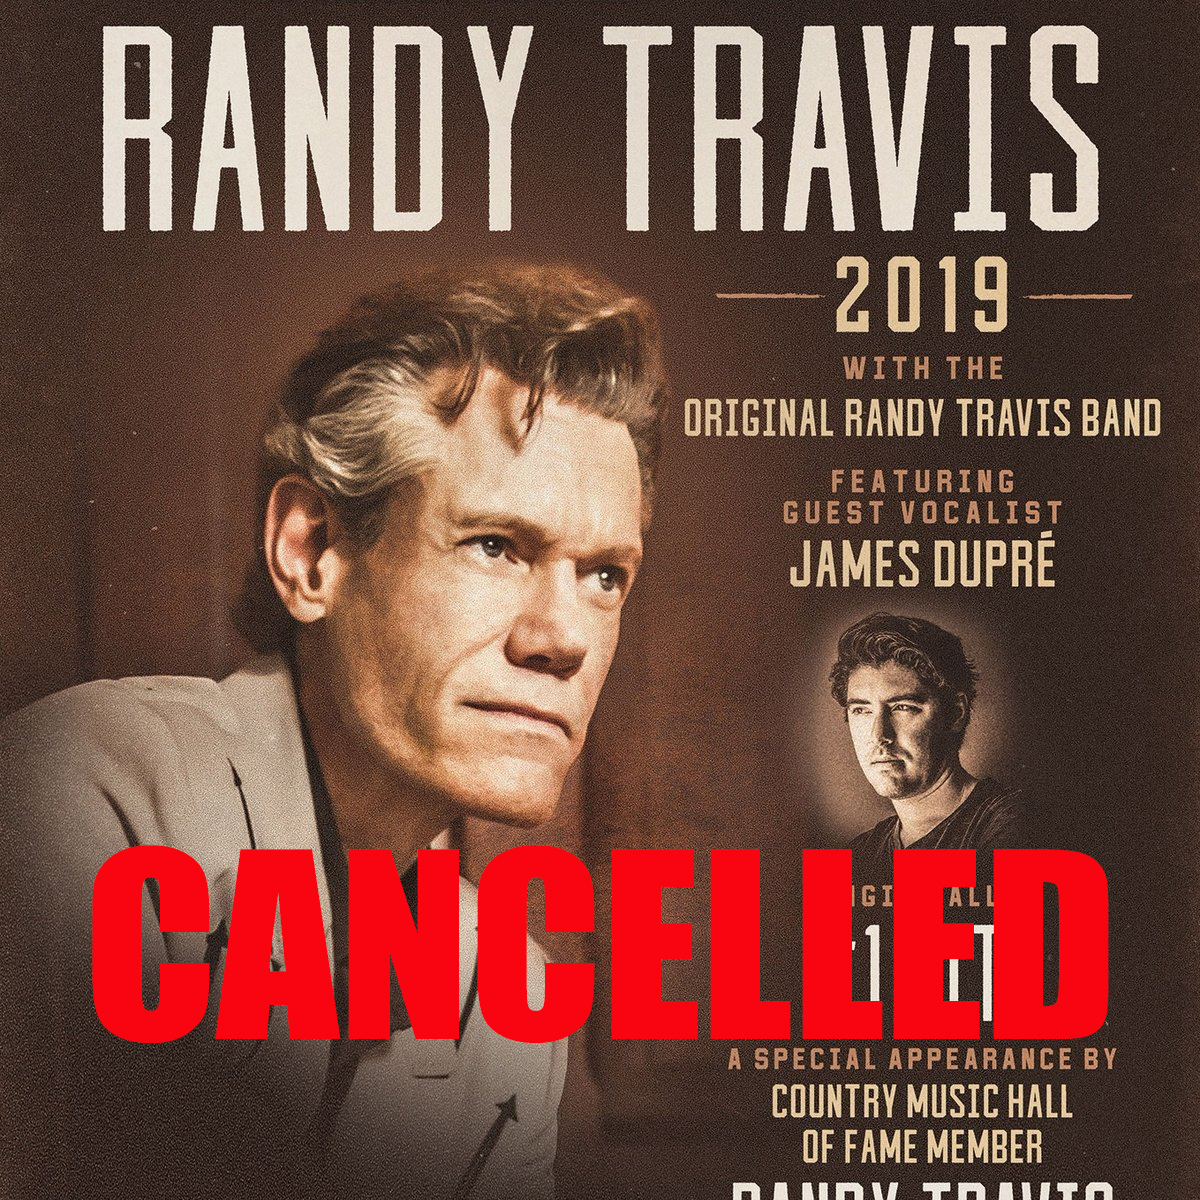 CANCELLED: The Music of Randy Travis